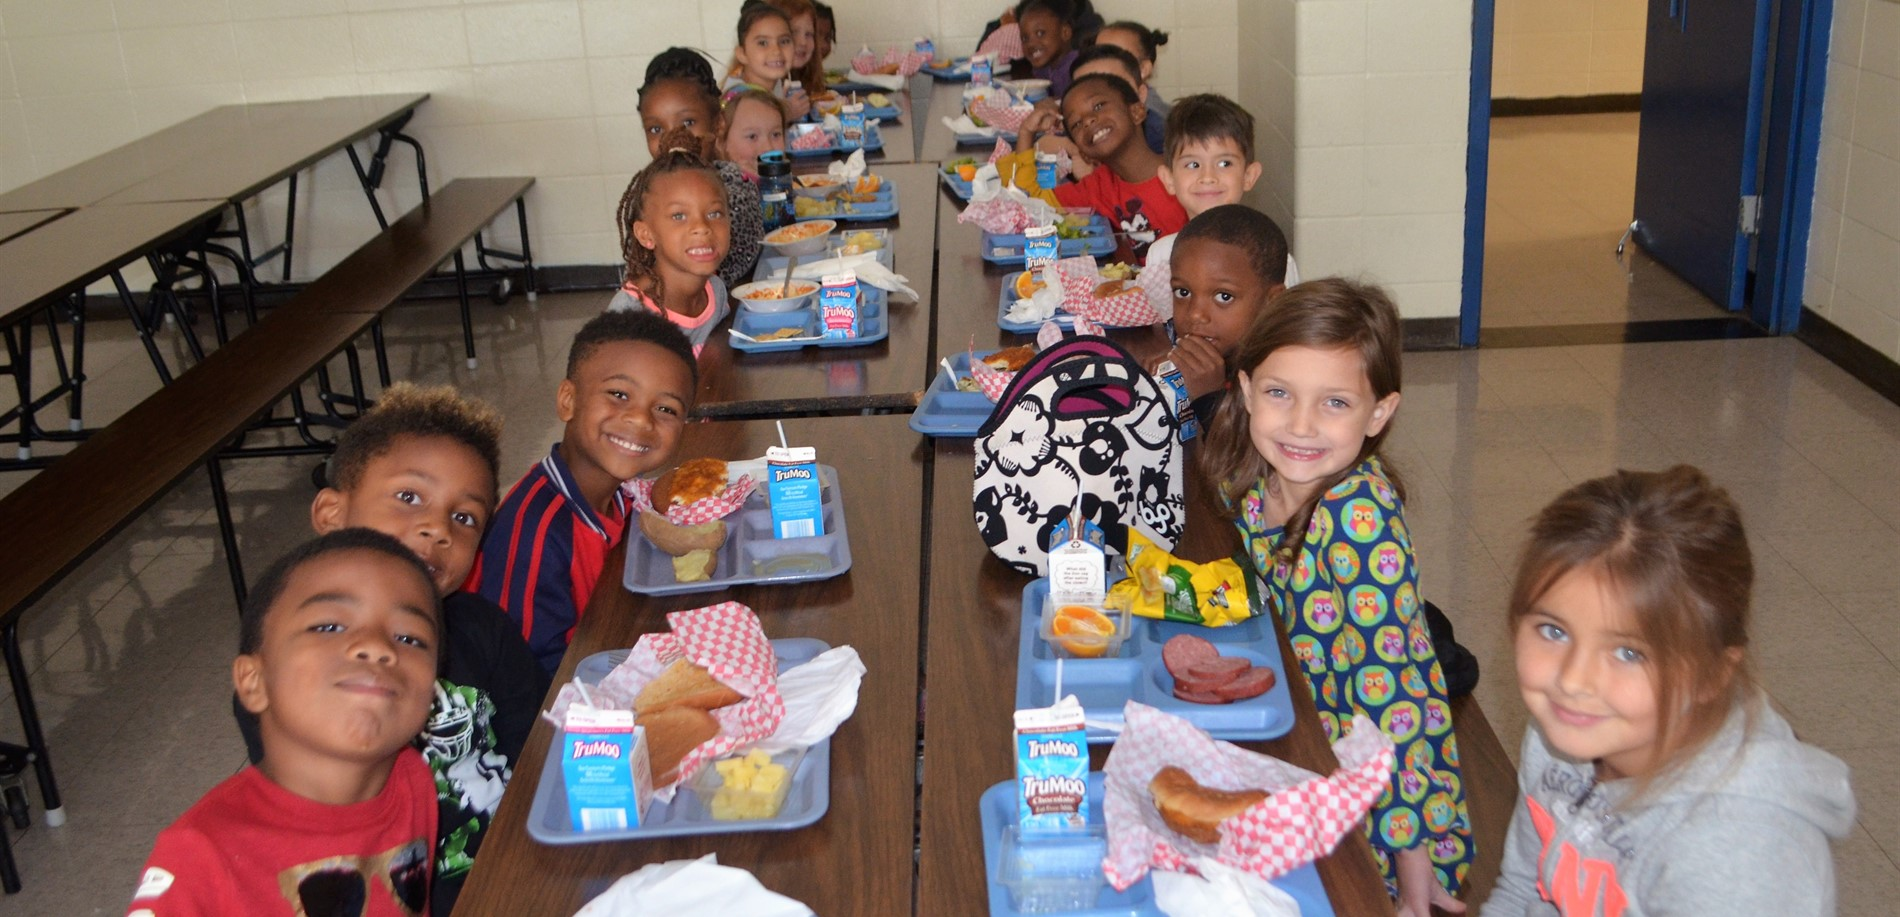 These Meadow View Elementary students ate a nutritious lunch.